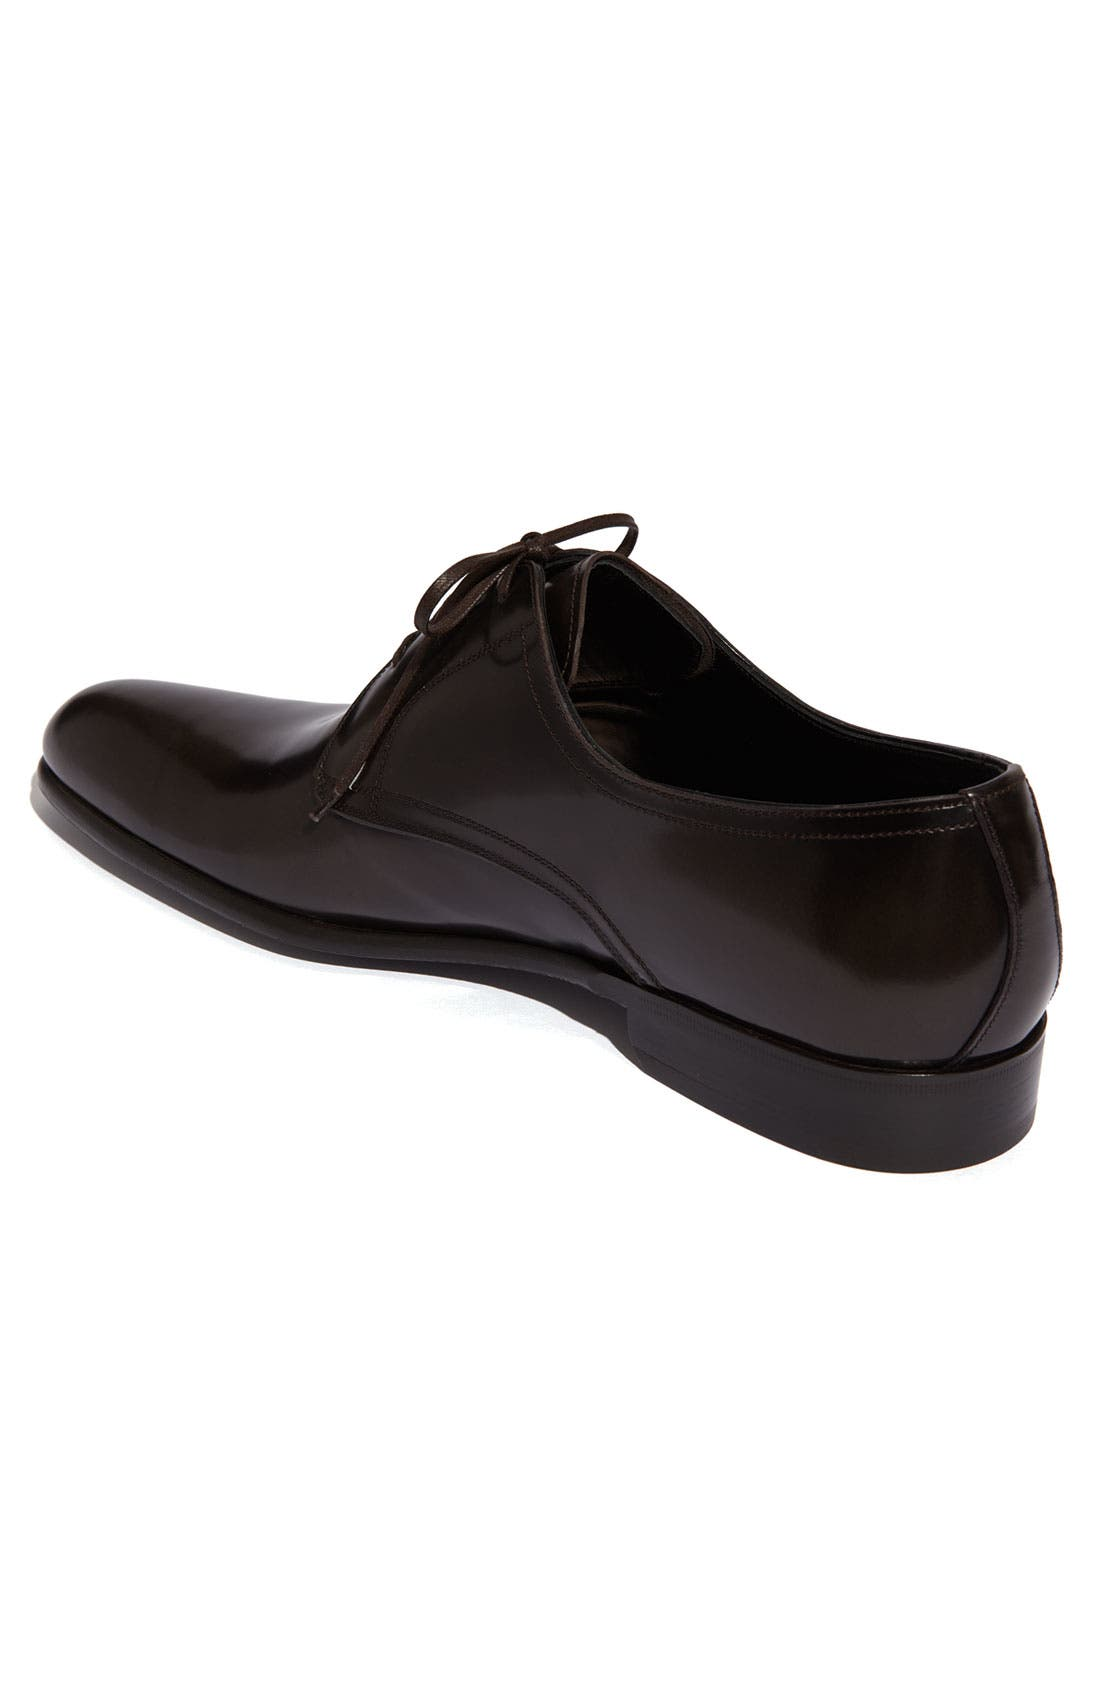 Alternate Image 2  - Dolce&Gabbana Plain Toe Oxford